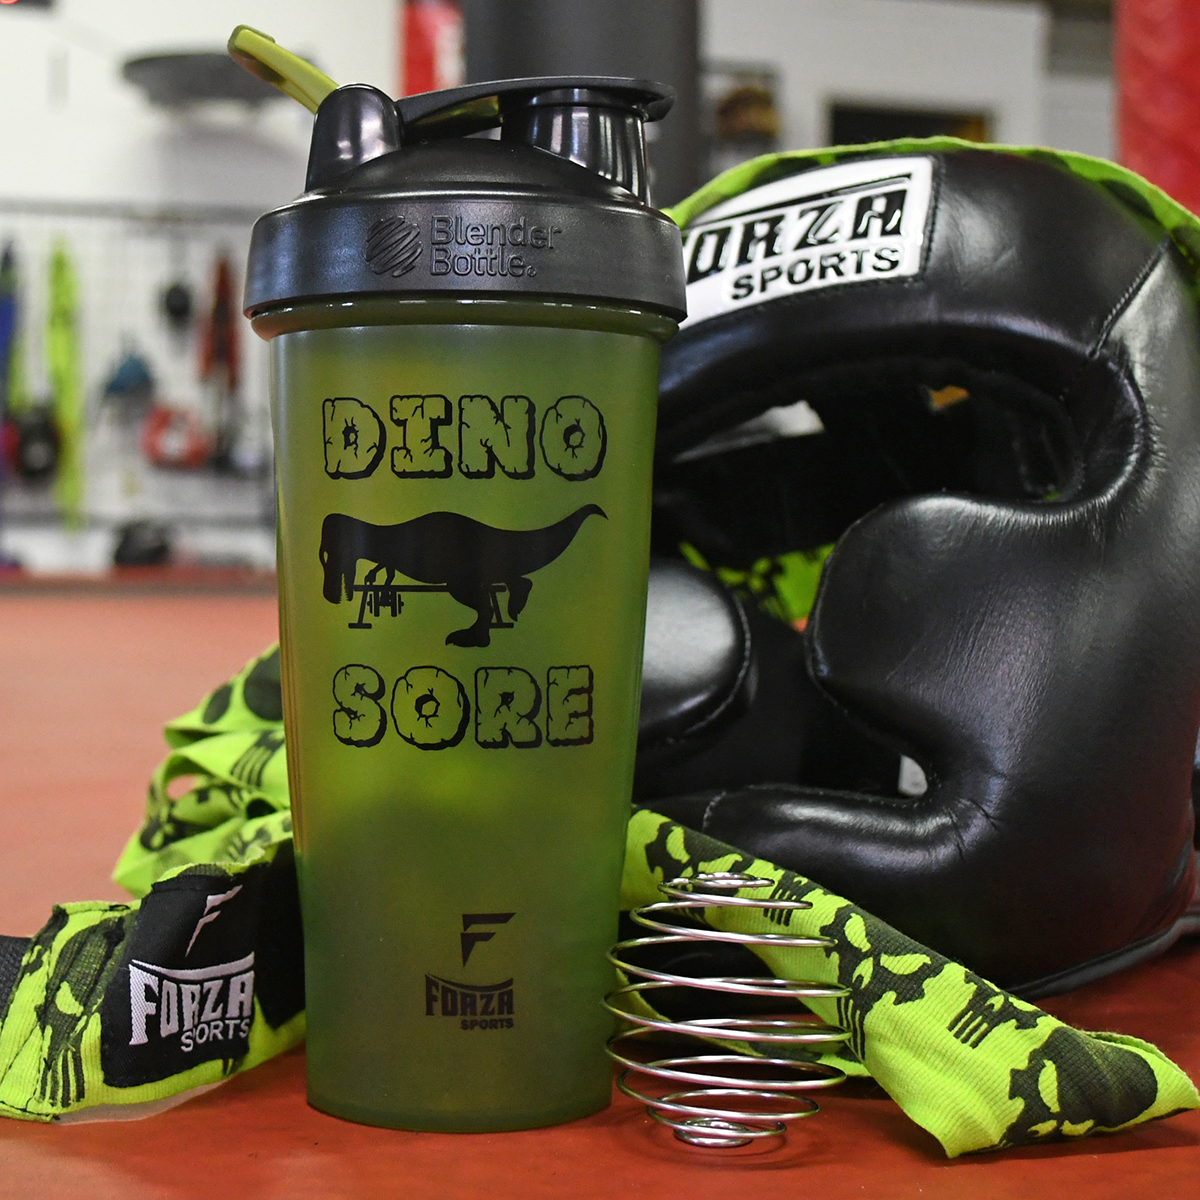 Blender-Bottle-x-Forza-Sports-Classic-28-oz-Shaker-Mixer-Cup-with-Loop-Top thumbnail 16